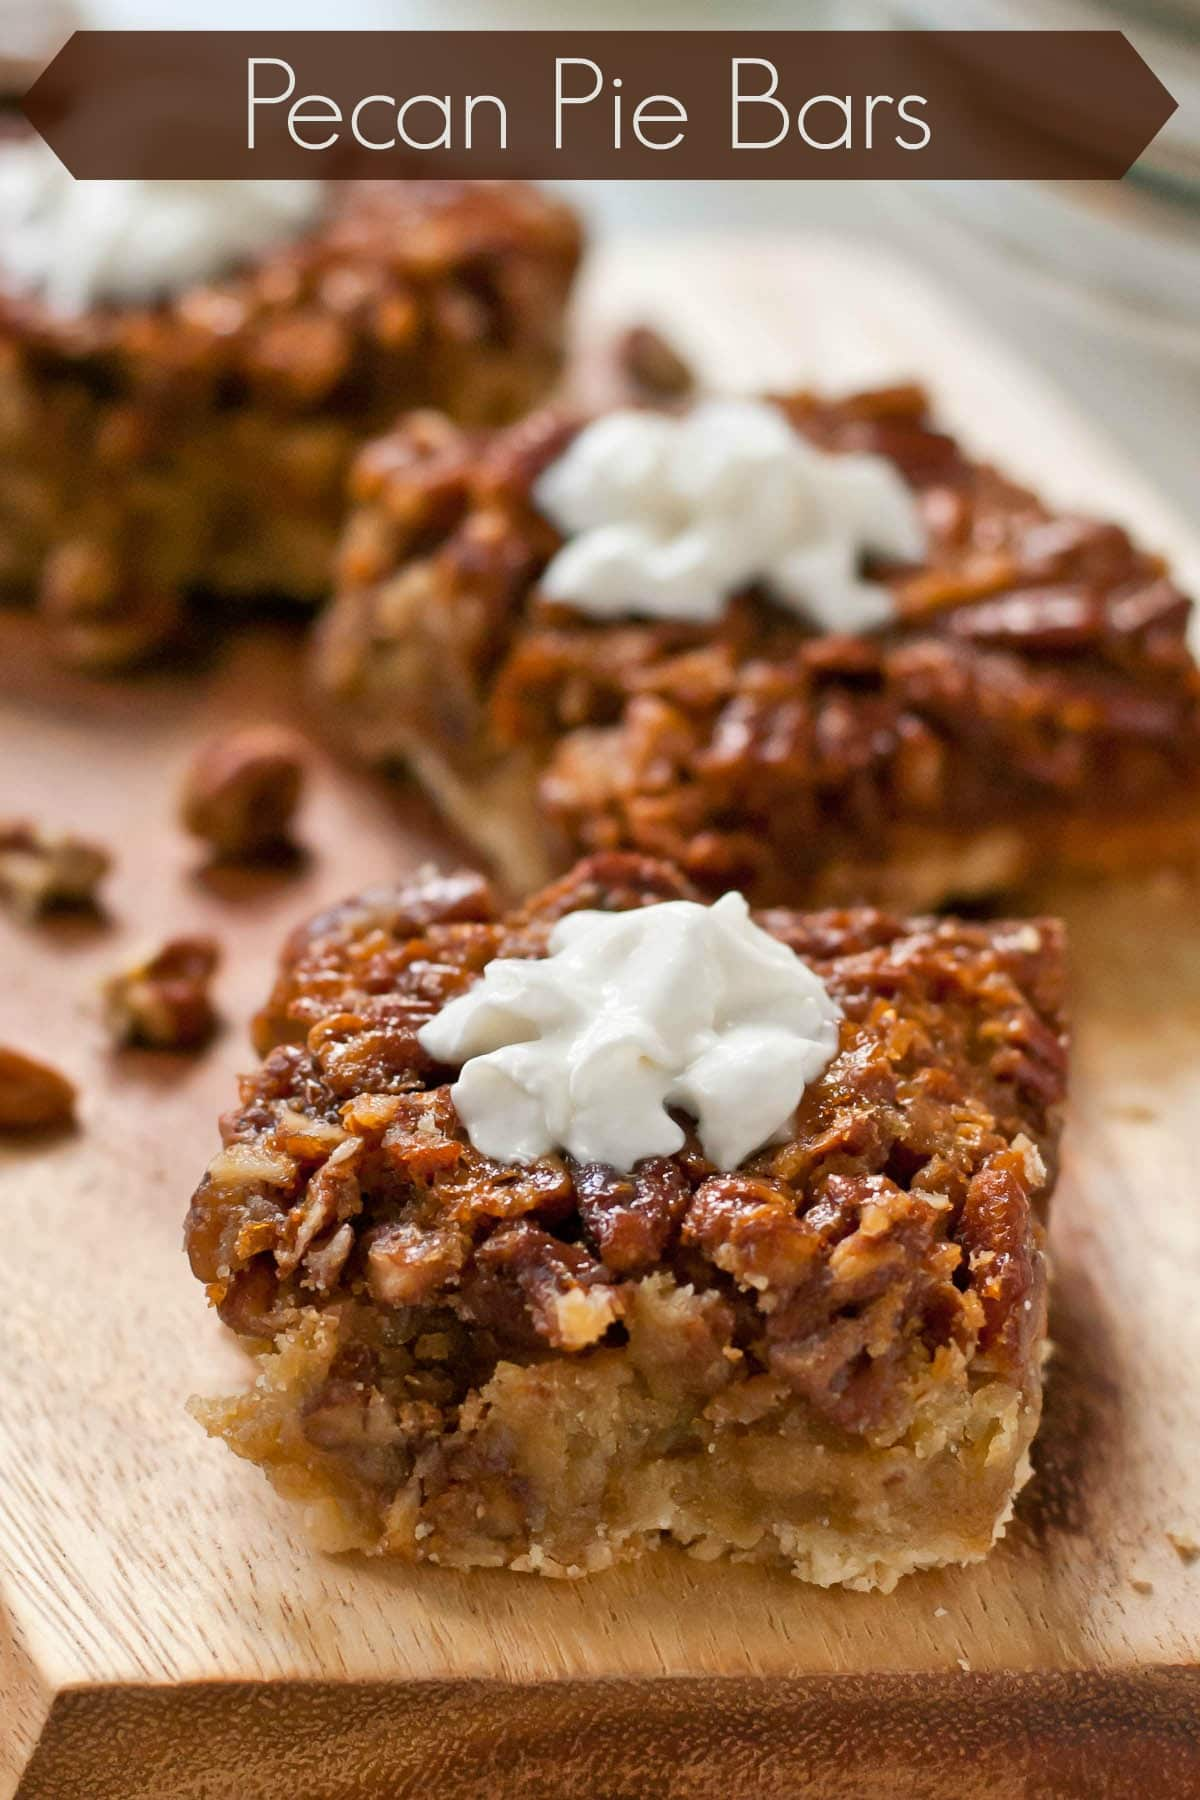 labeled image of several pecan pie bars topped with whipped cream served on a board